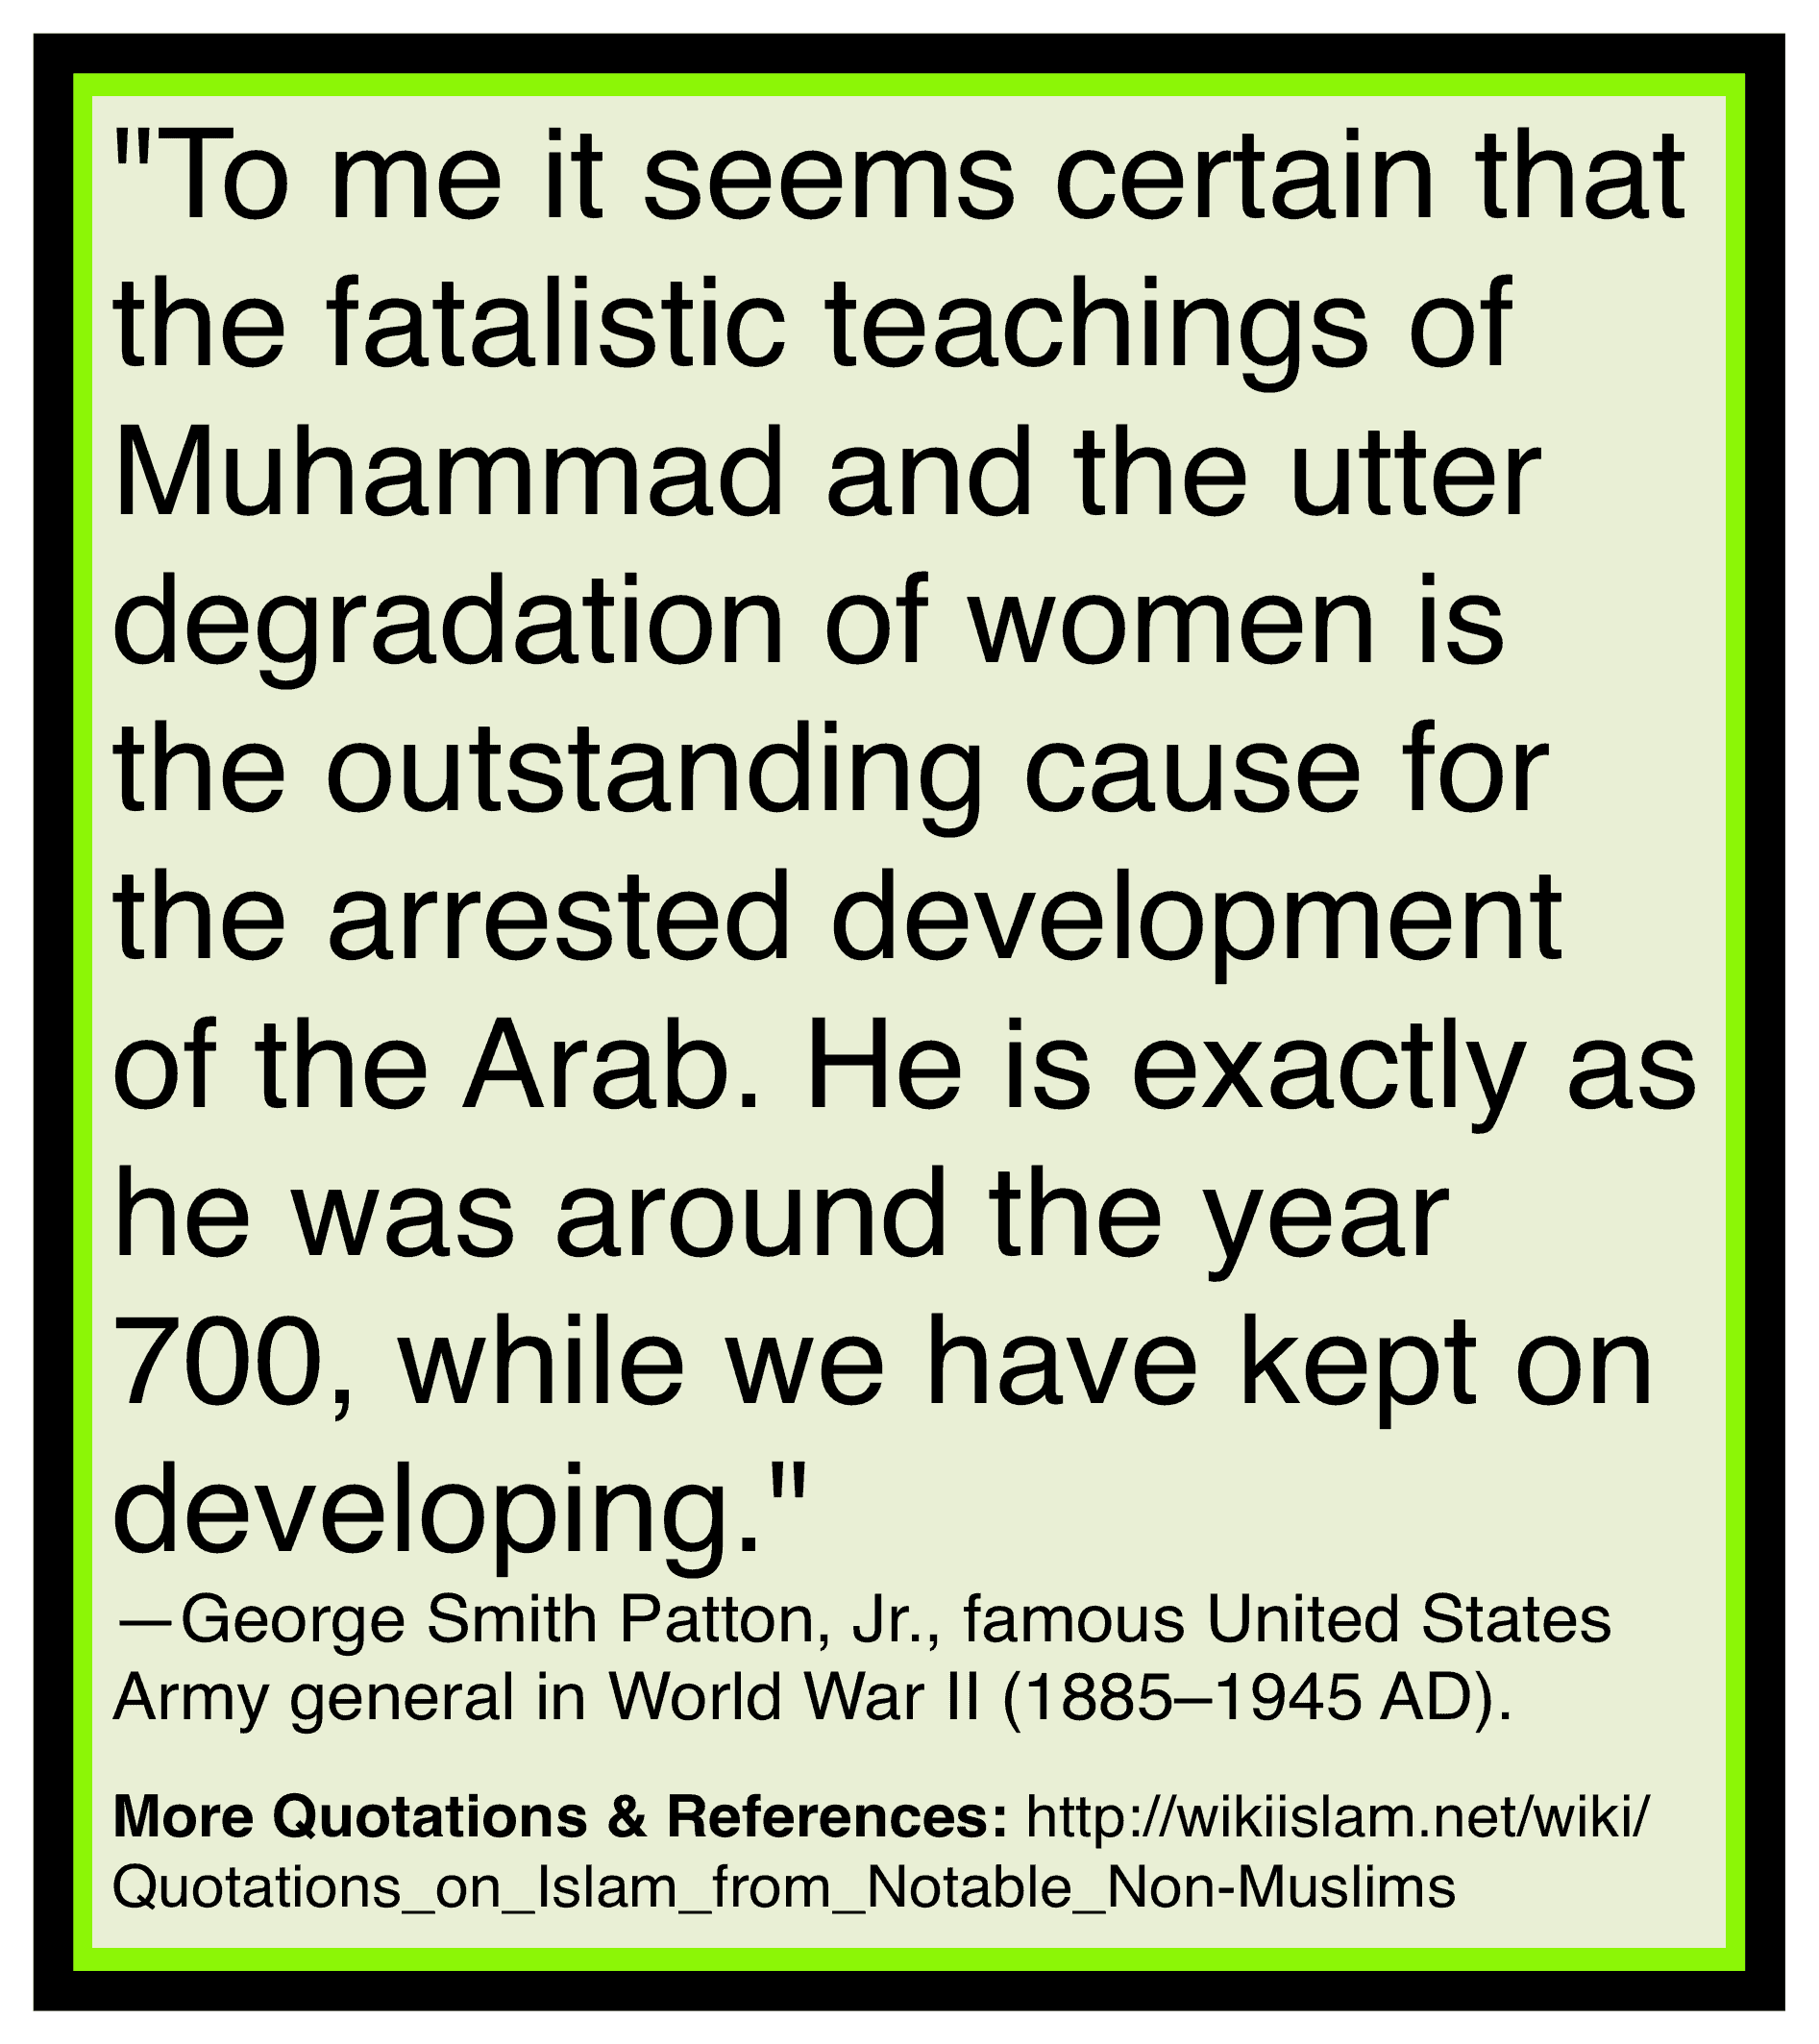 Islam ruins development